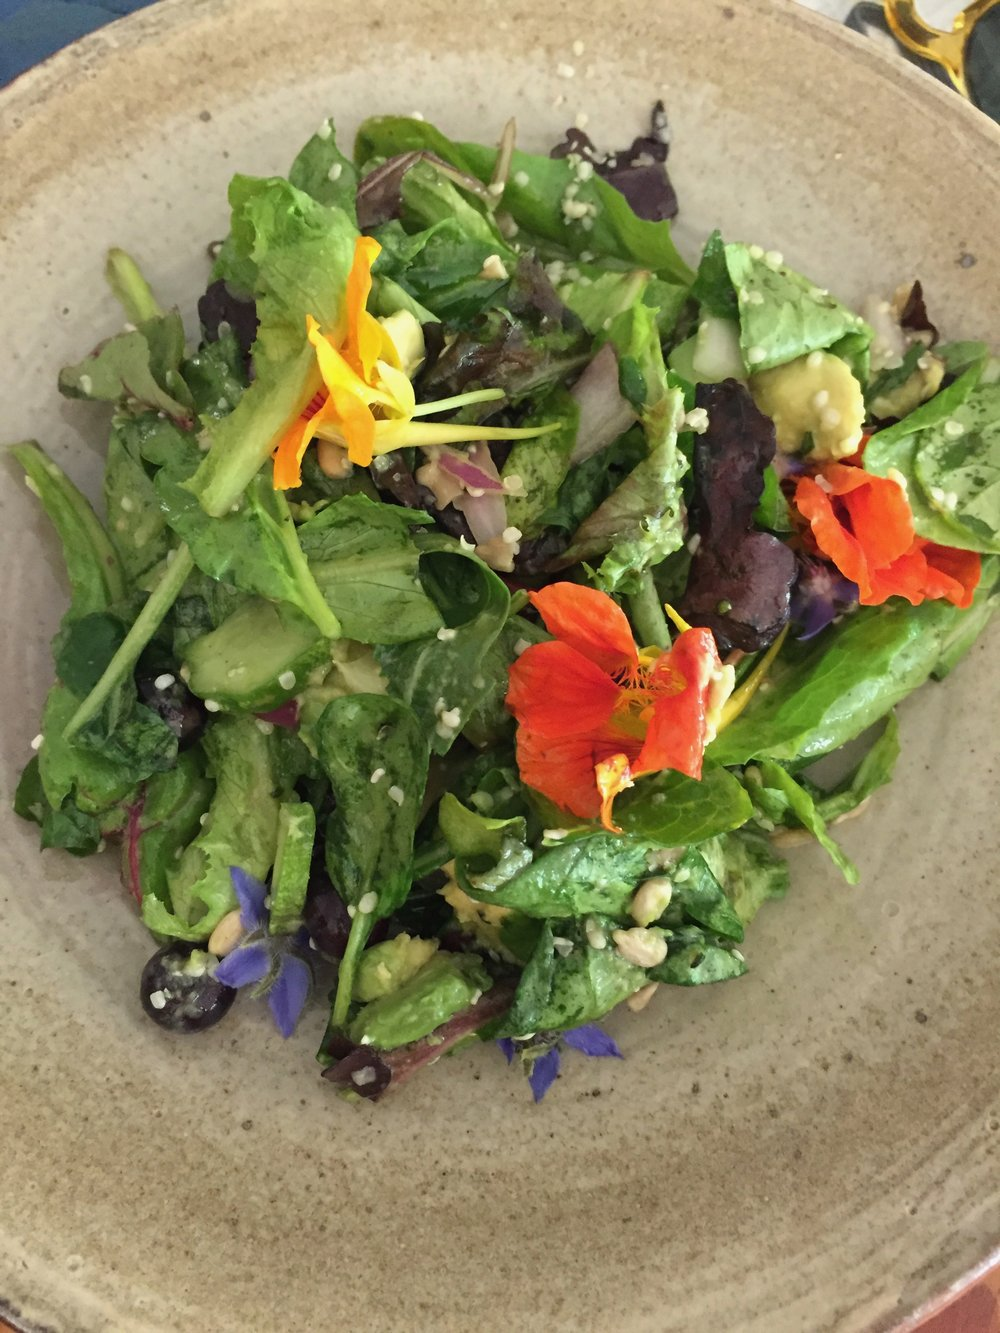 Salad forged out of the local gardens with several seasonal flowers